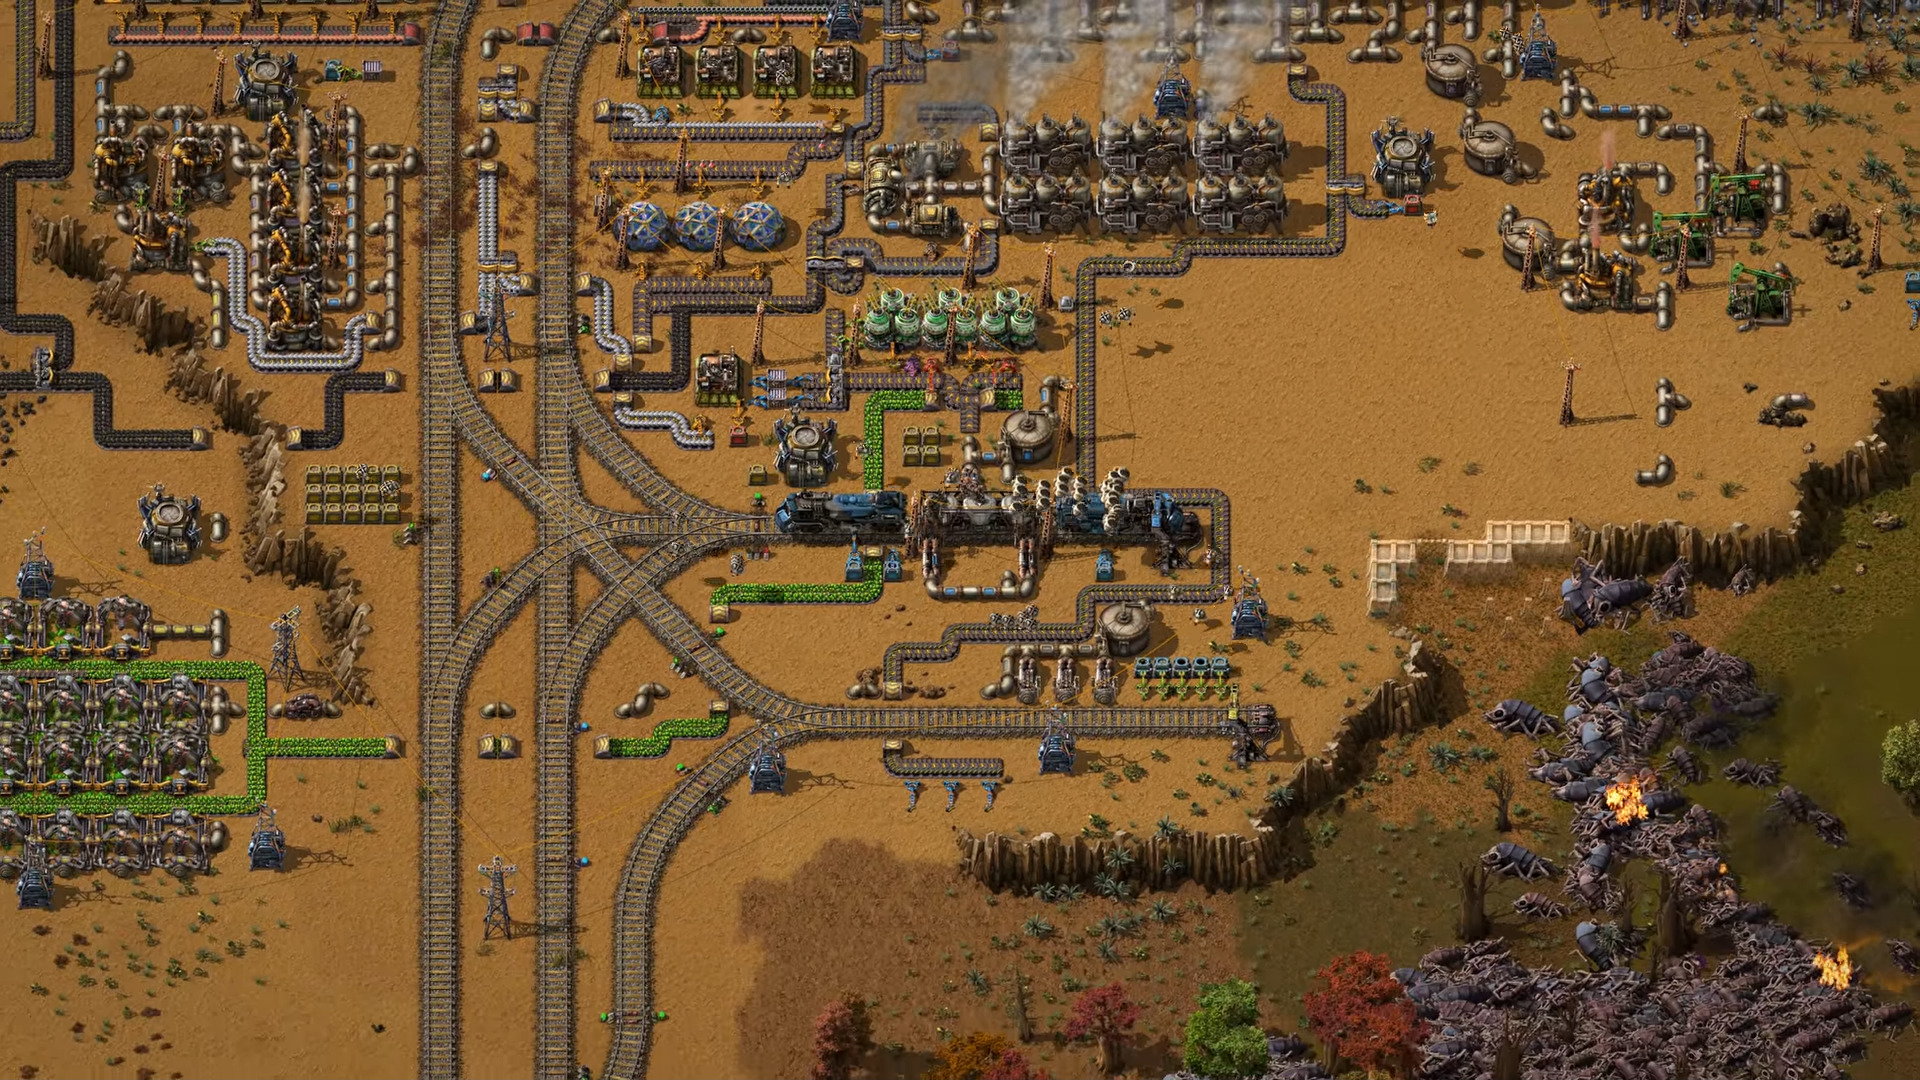 Factorio Finally Receives The 1.0 Final Release Today After 8.5 Years In Development